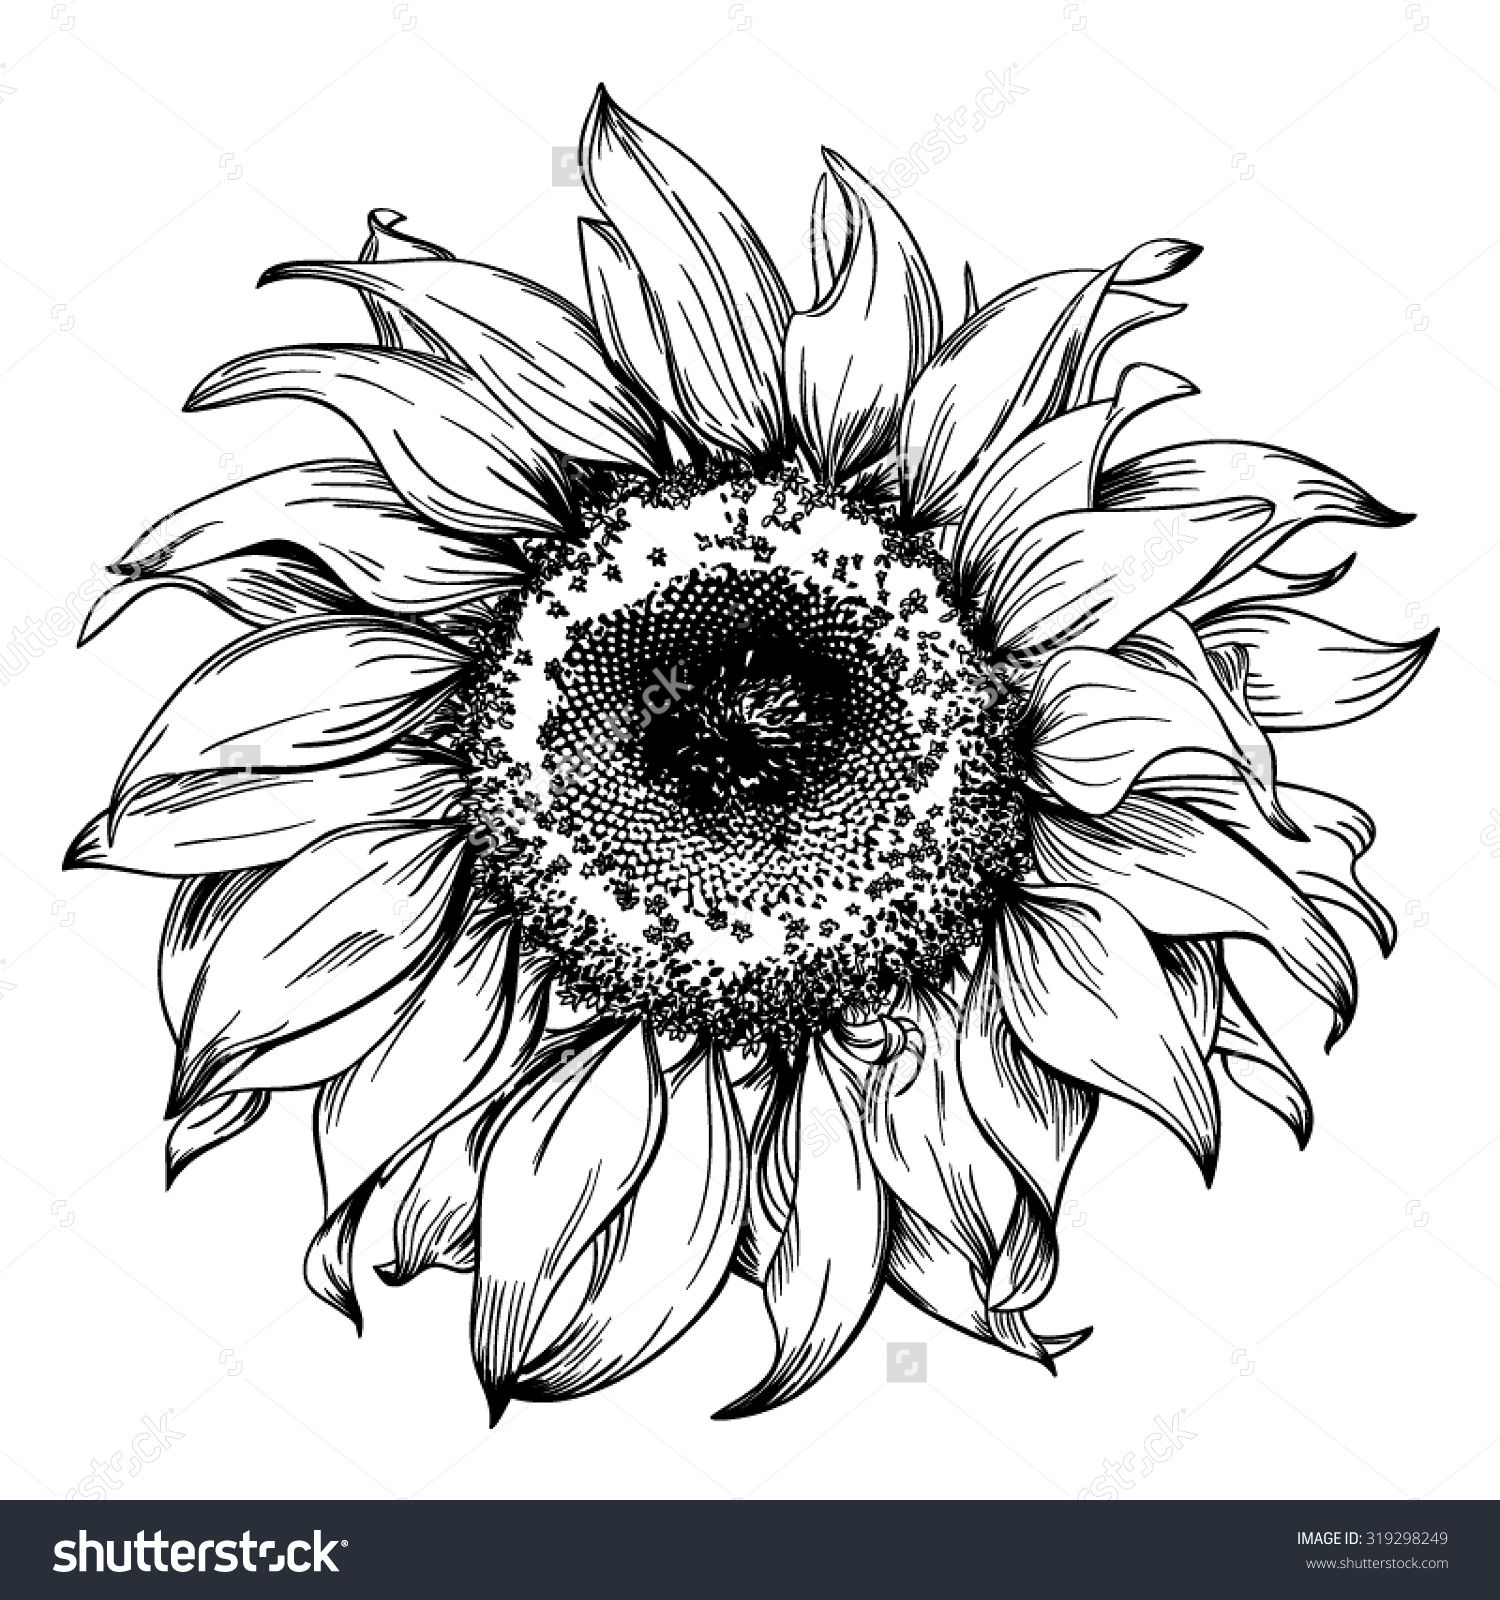 Tattoo Line Drawing Software : Hand drawn realistic vintage sunflower pen and ink drawing